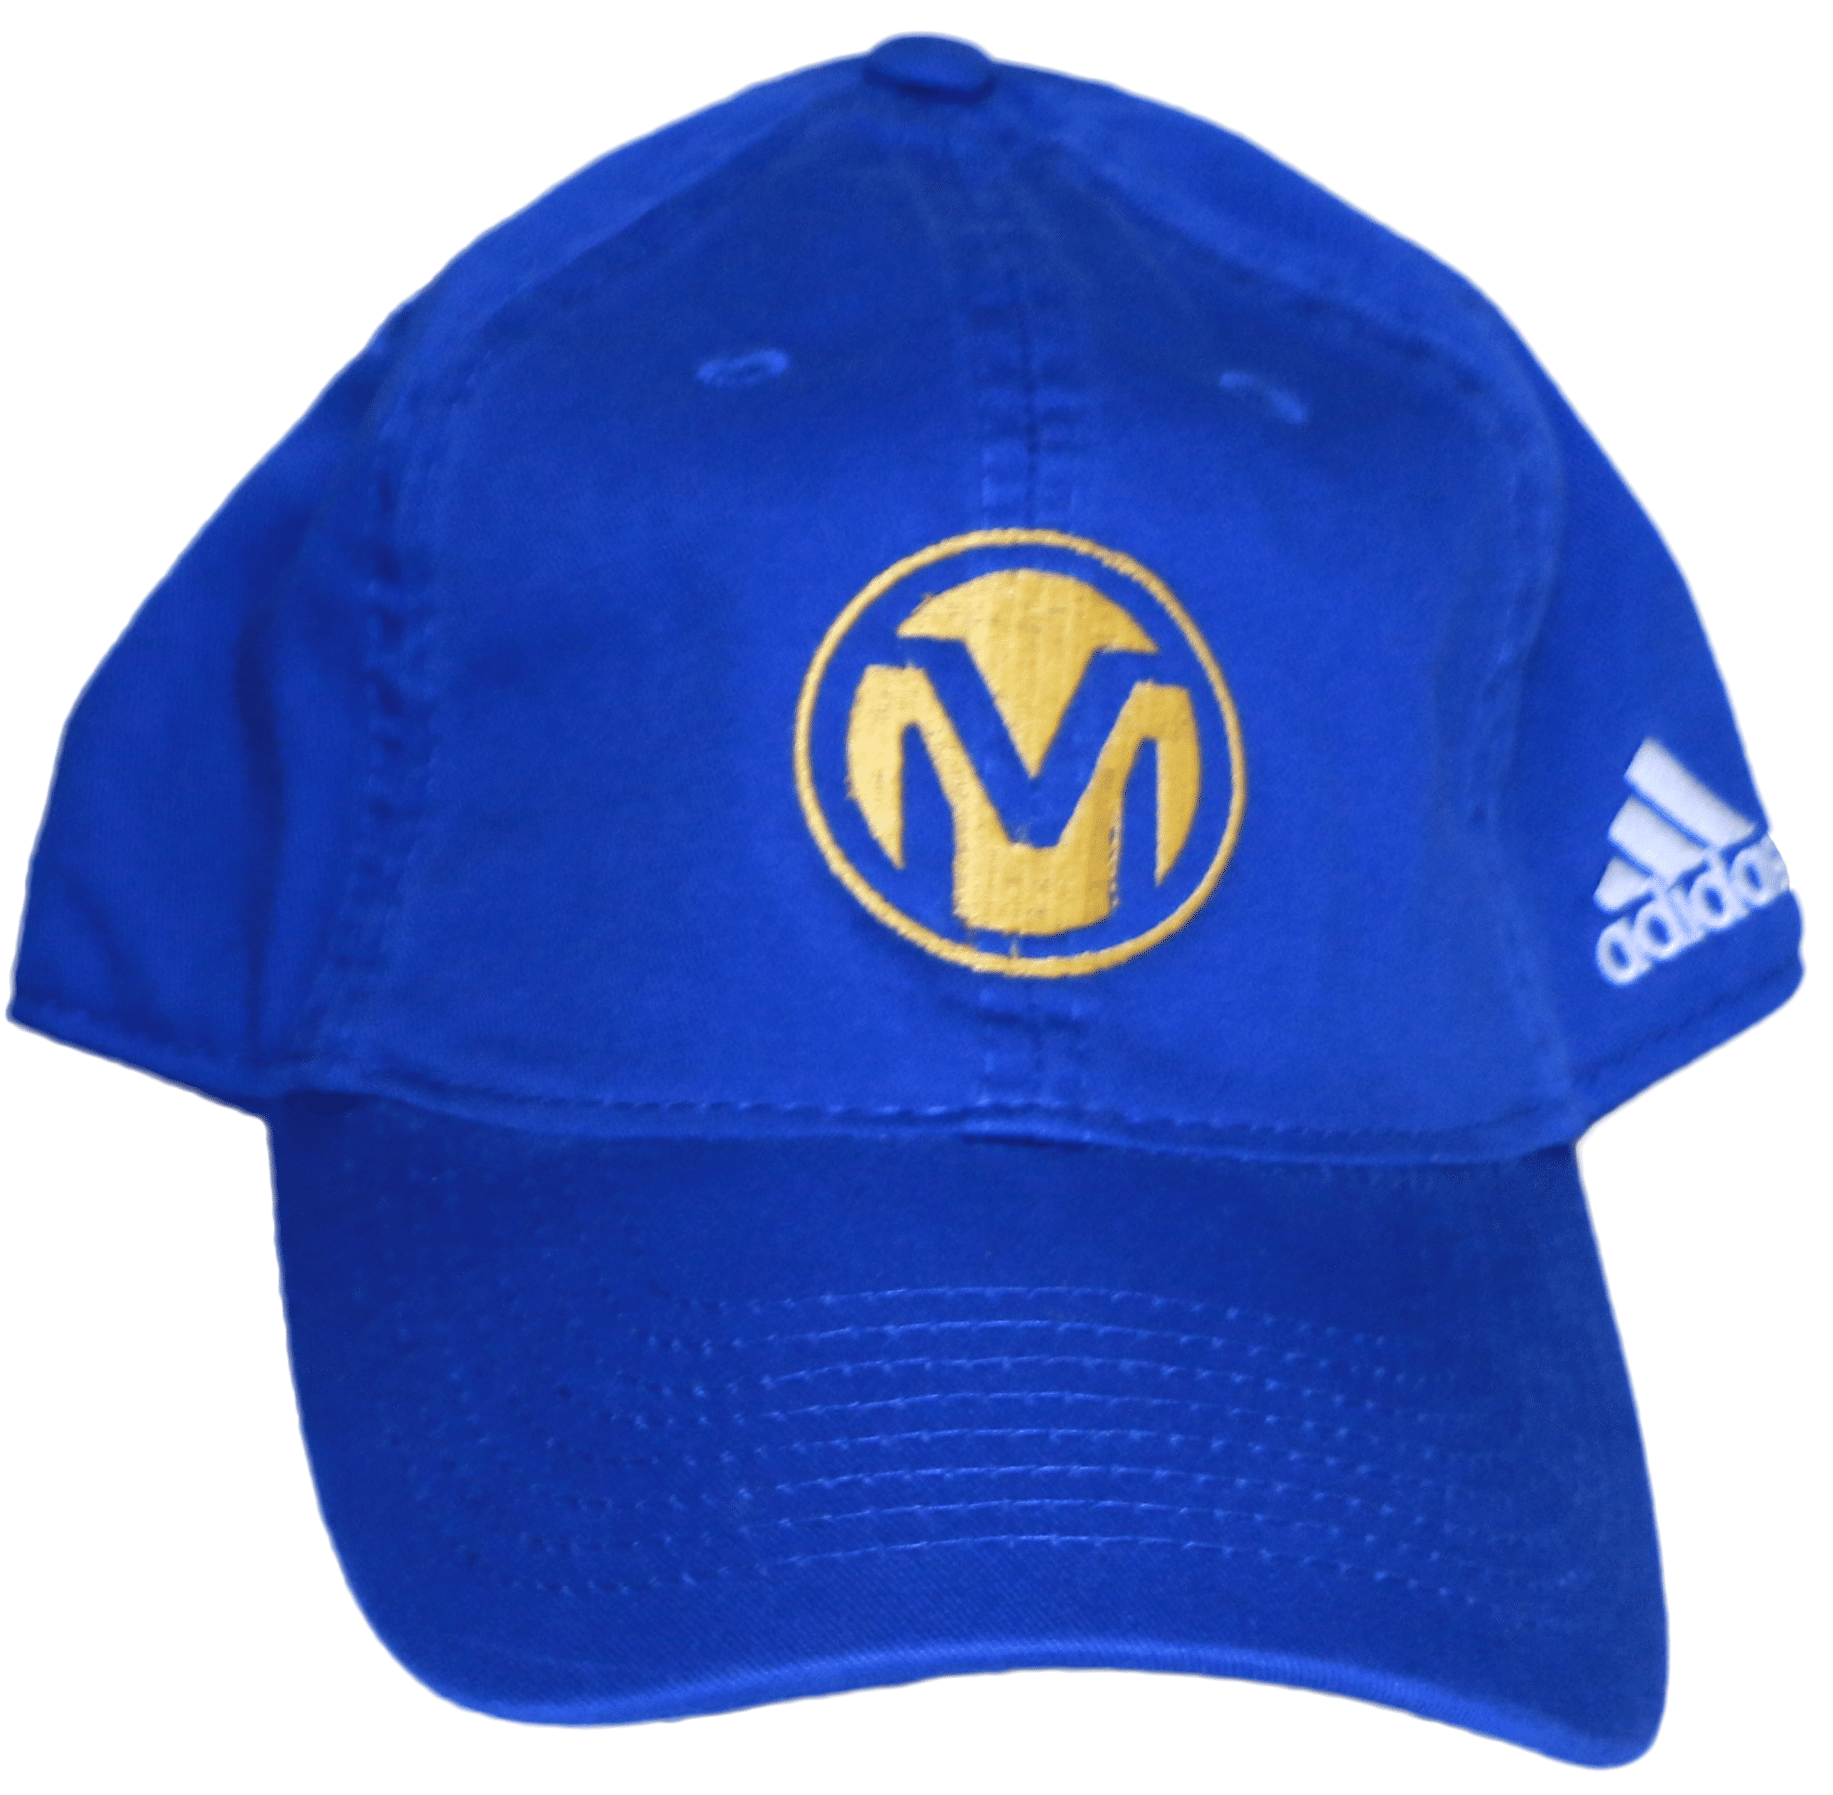 Blue Energyman Hat